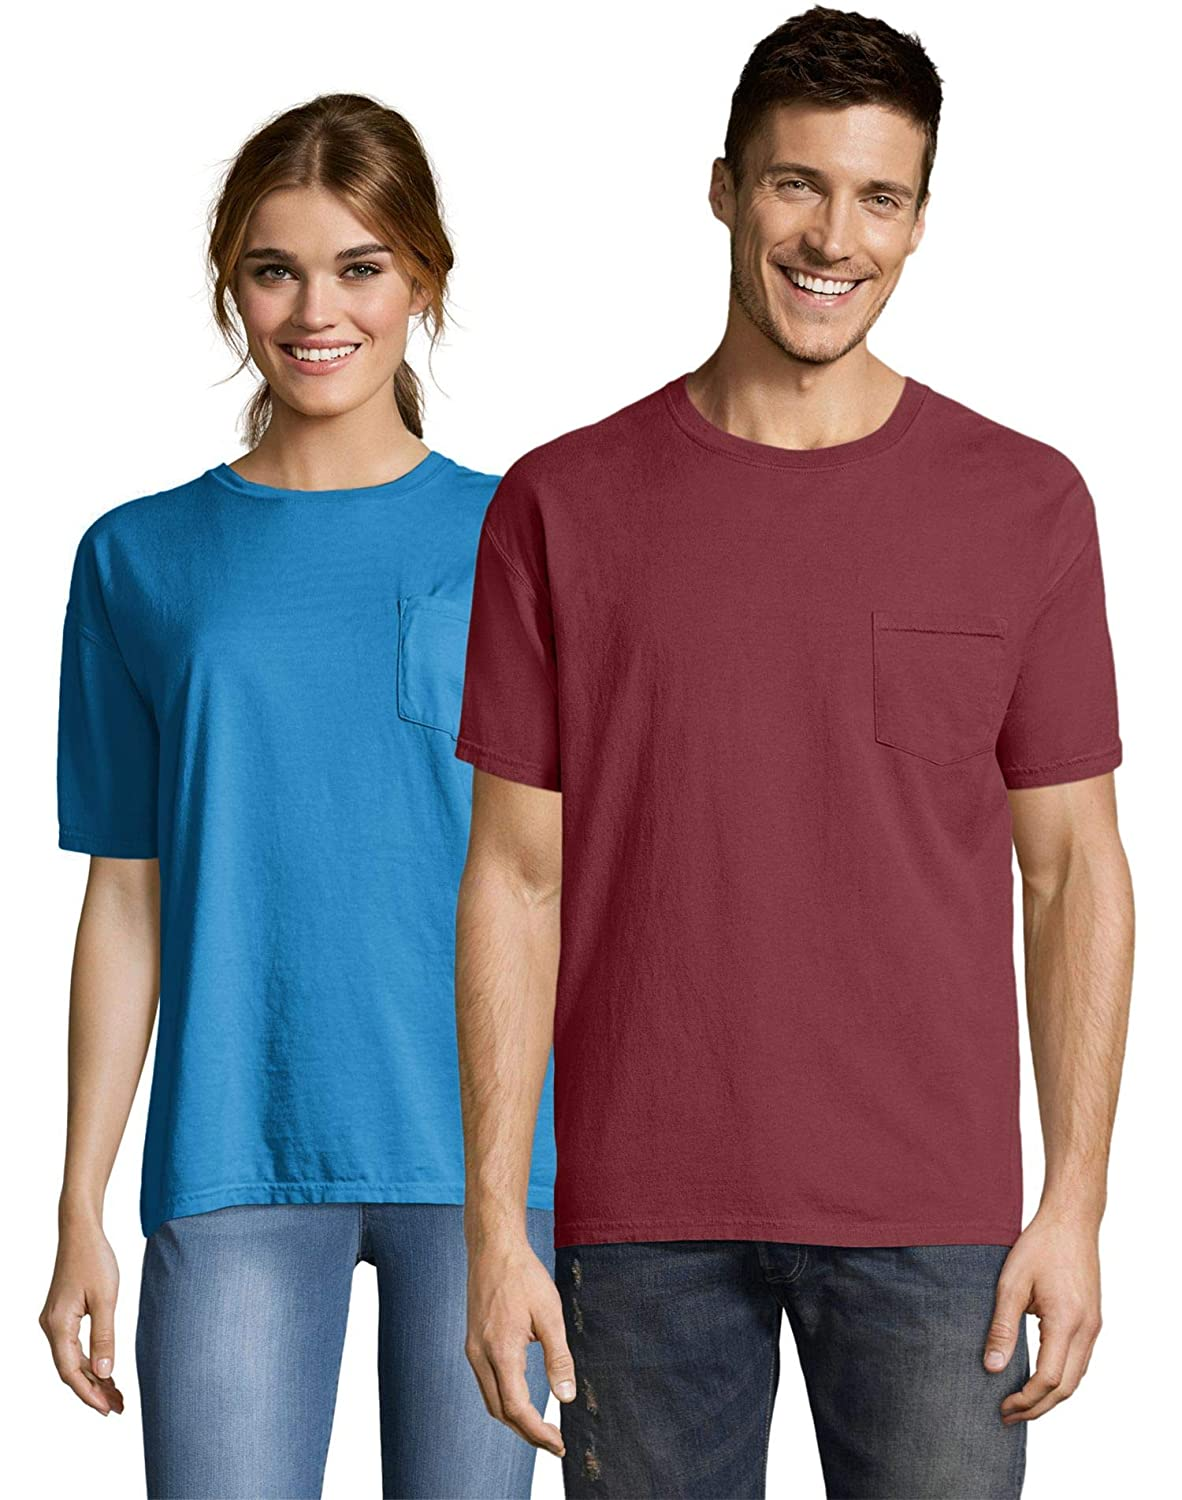 Hanes ComfortWash Garment Dyed Short Sleeve T-Shirt with a Pocket GDH150